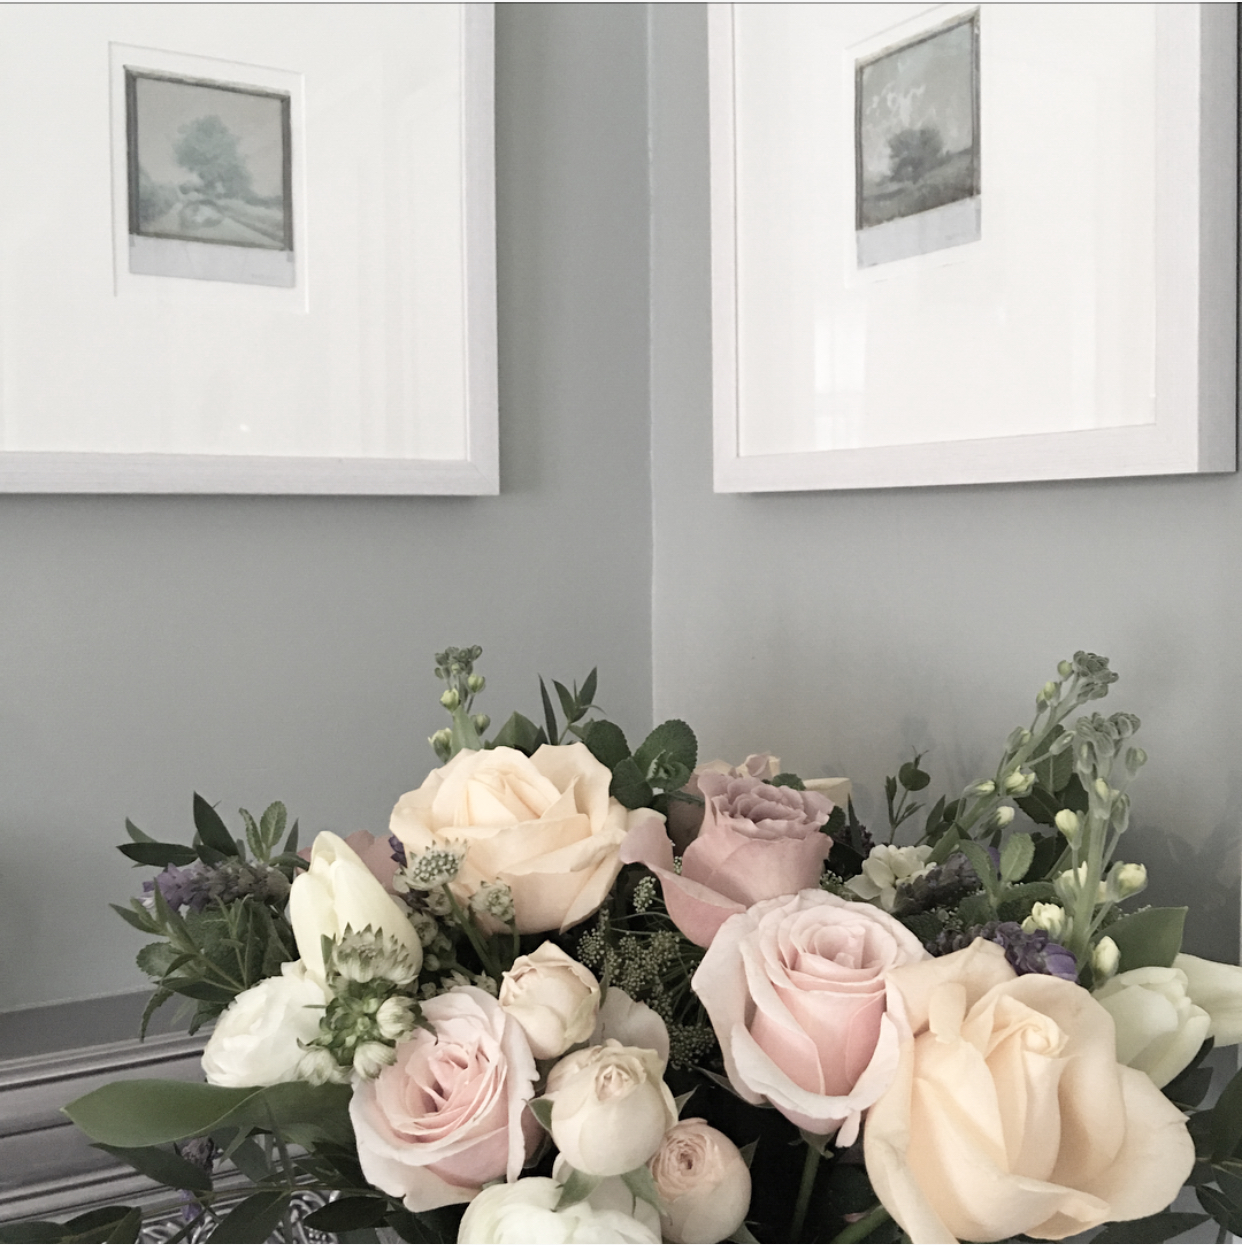 The New Neutrals: In the #MOhome main bedroom, the walls are painted in Farrow & Ball's 'Light Blue'; the headboard is tiled with H&E Smith Victorian tiles; and the flowers are from The Real Flower Company. Framed Polaroid artwork by Nathan Pendlebury (erpenstudios.co.uk)